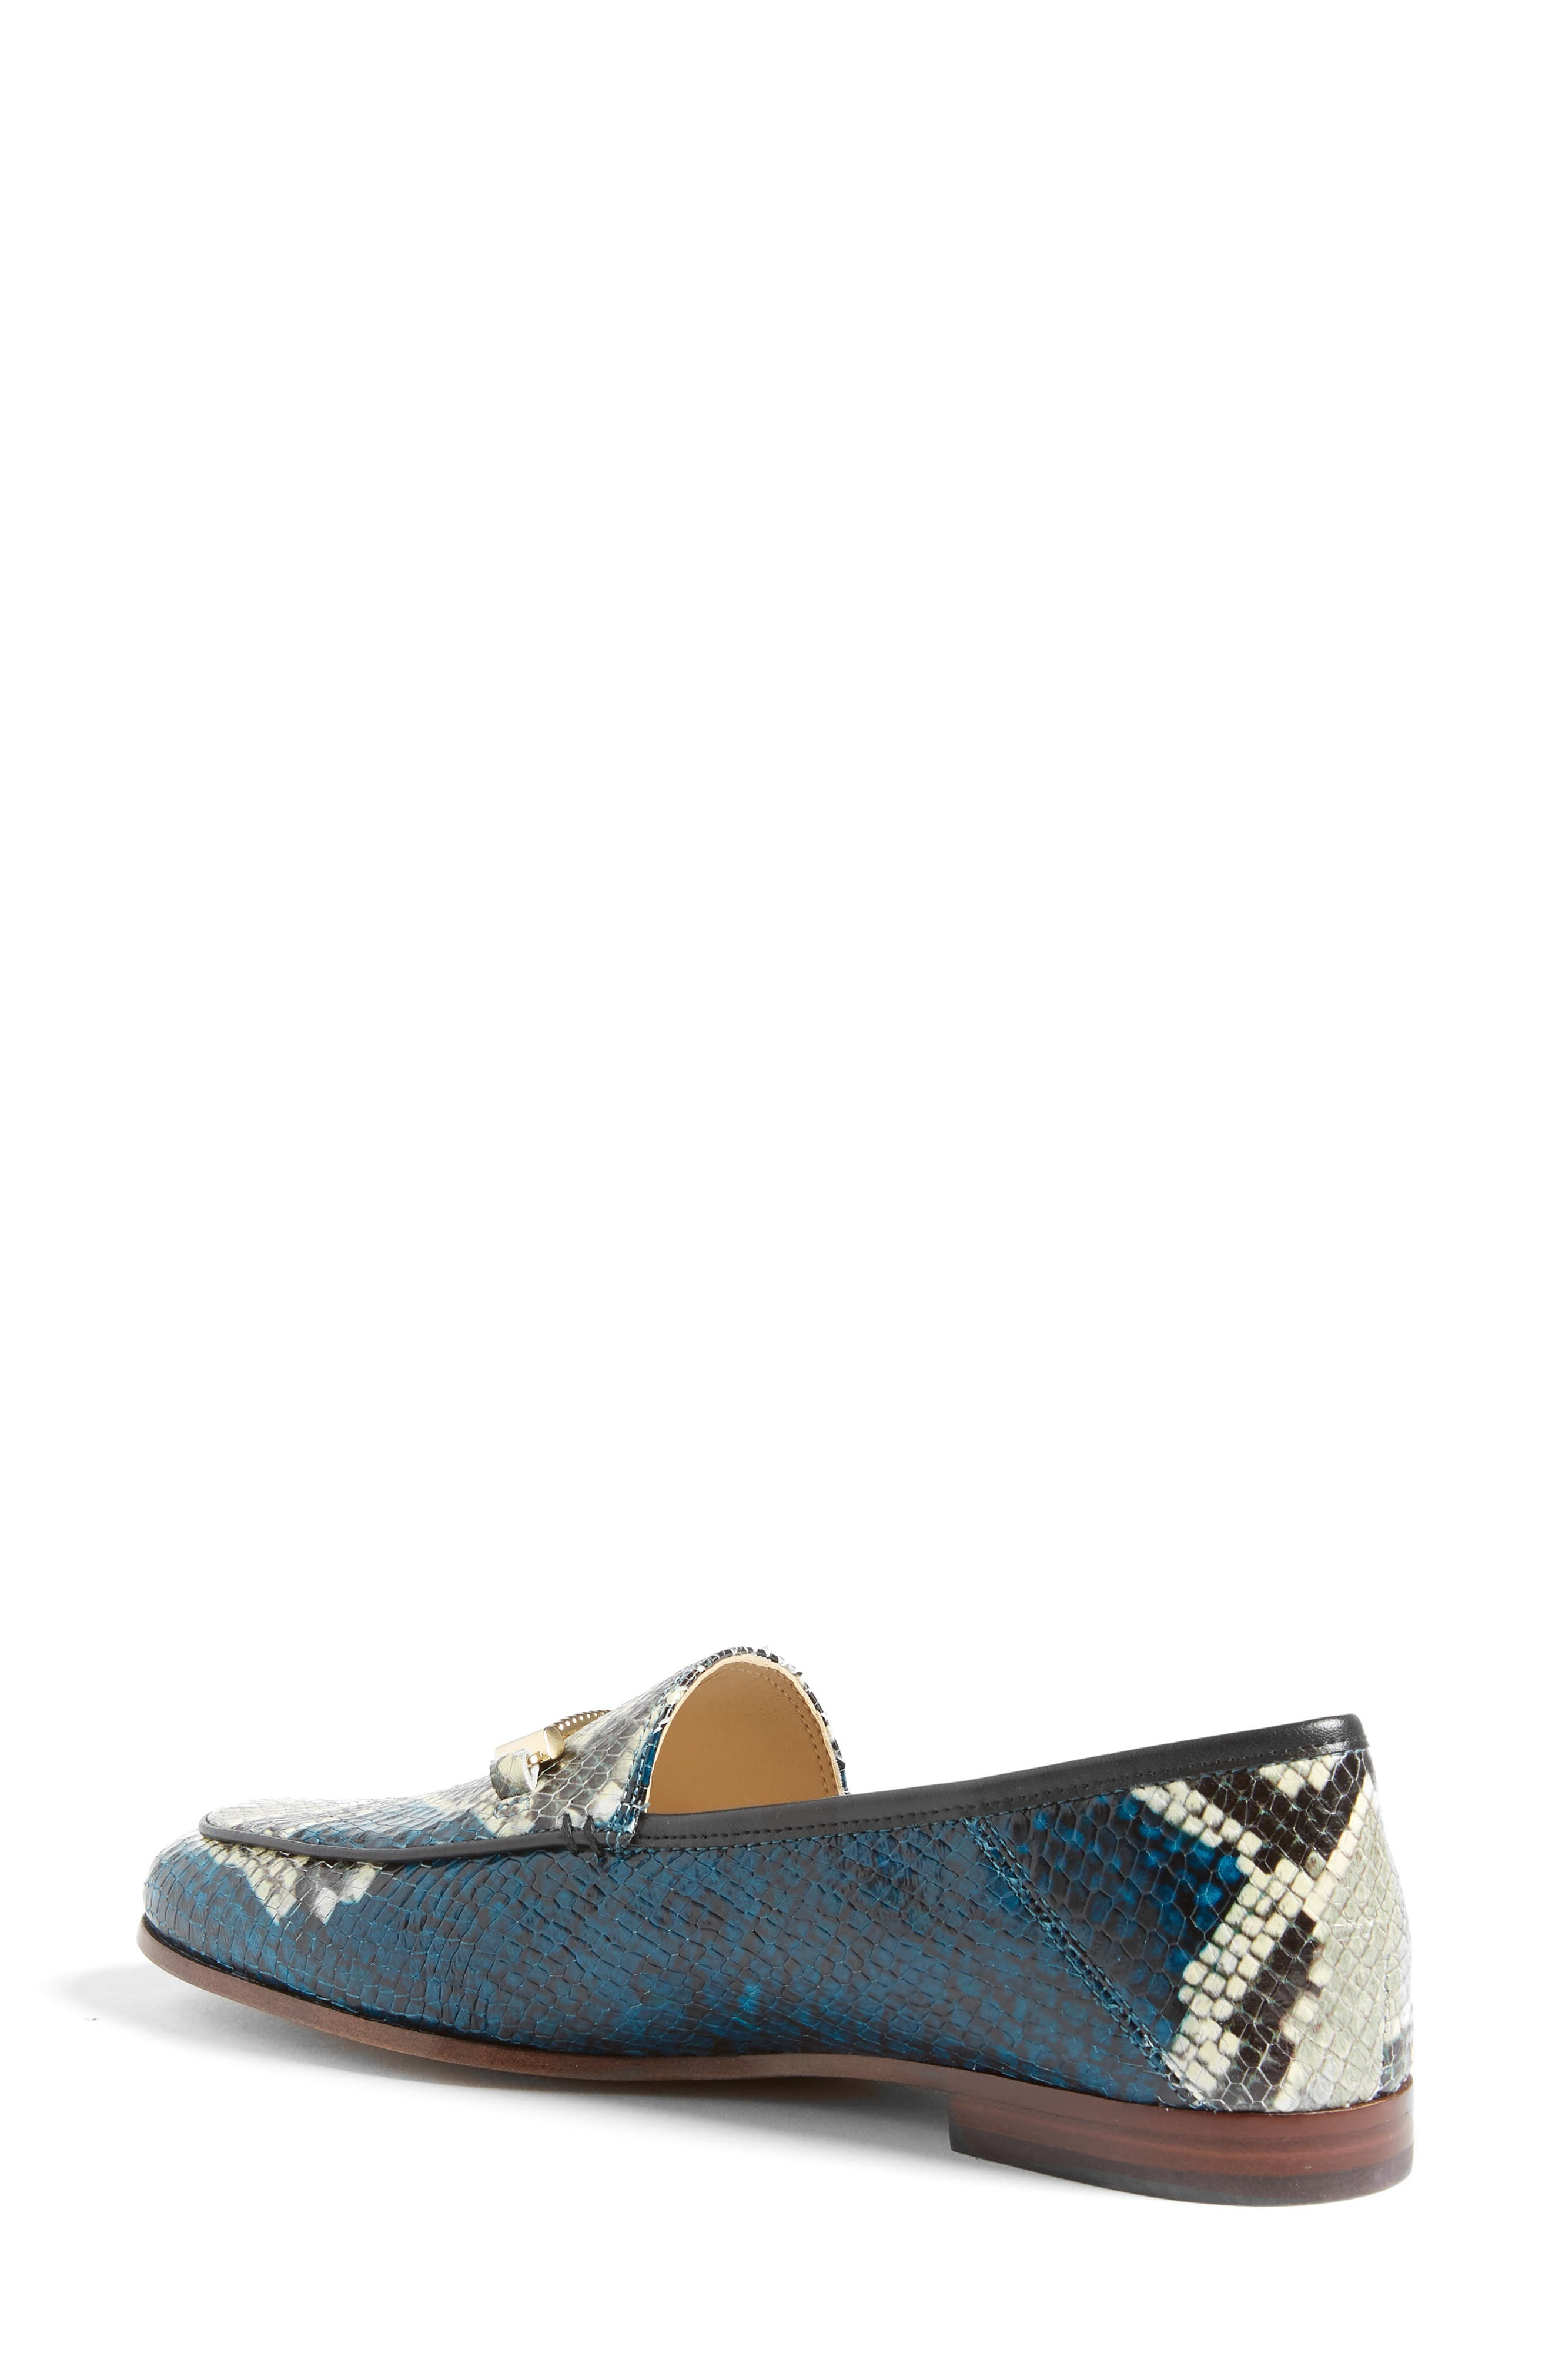 Lior Loafer,                             Alternate thumbnail 2, color,                             Peacock Blue Snake Print